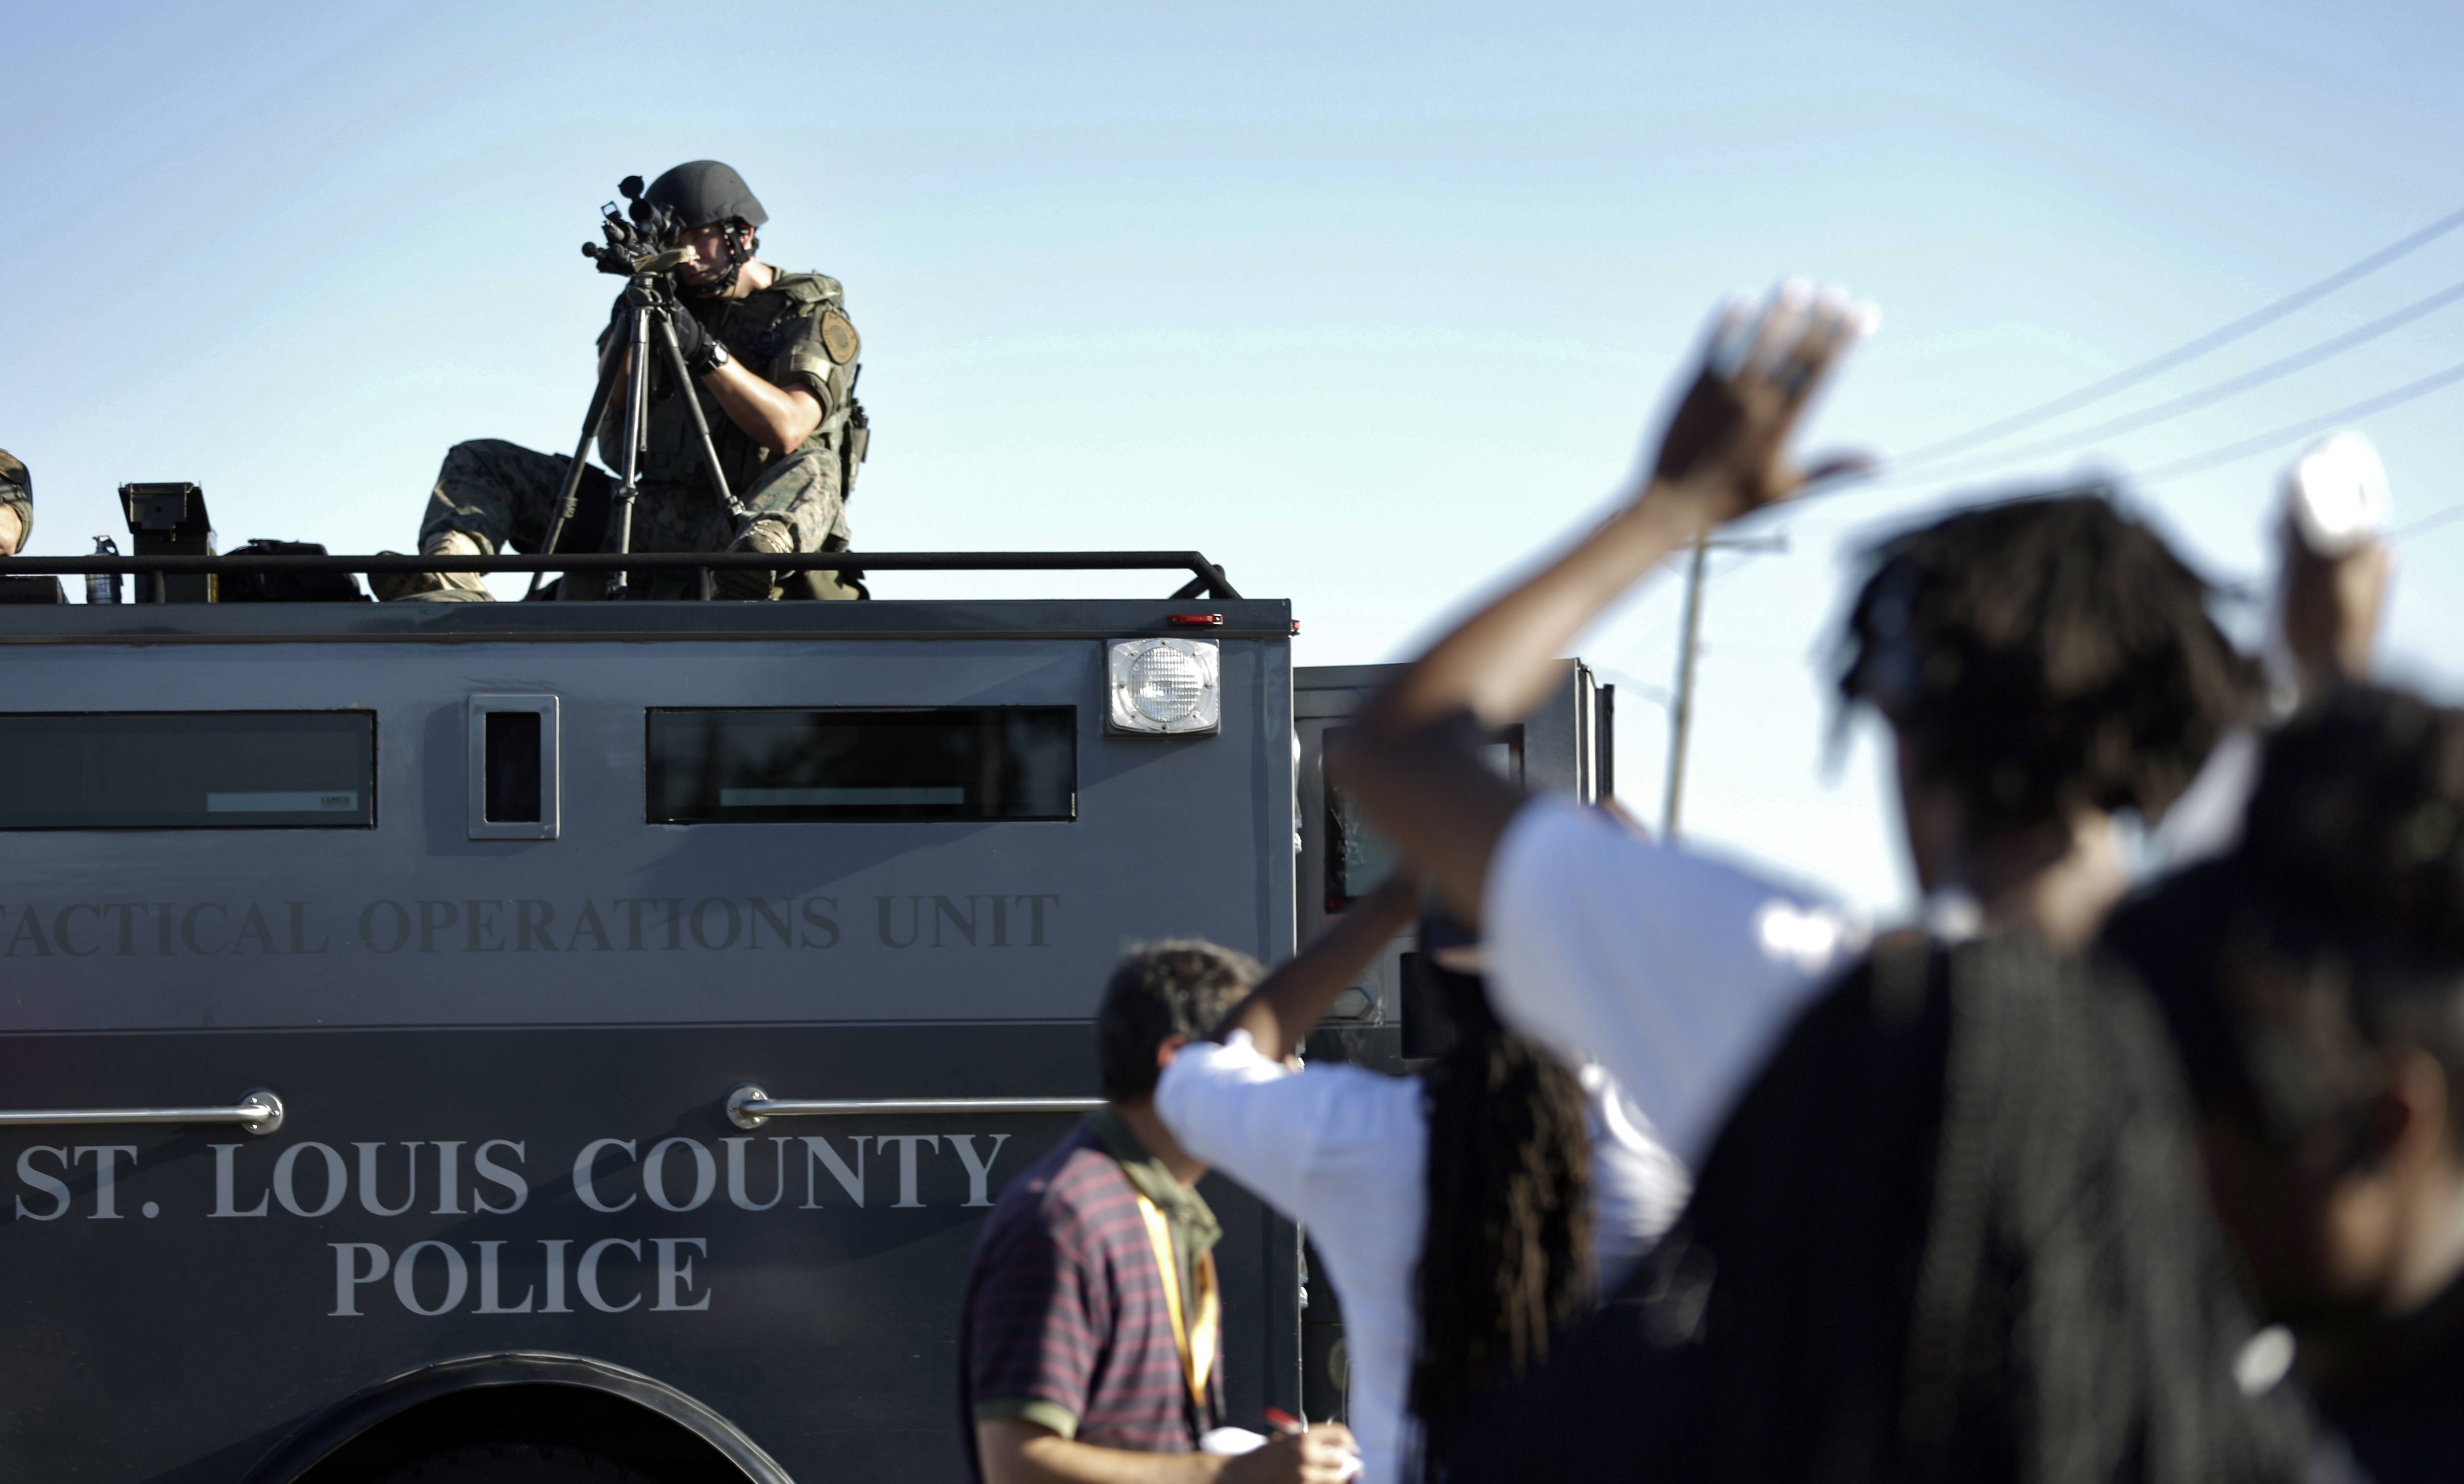 A member of the St. Louis County Police Department points his weapon in the direction of a group of protesters in Ferguson, Mo. on Wednesday, Aug. 13, 2014.